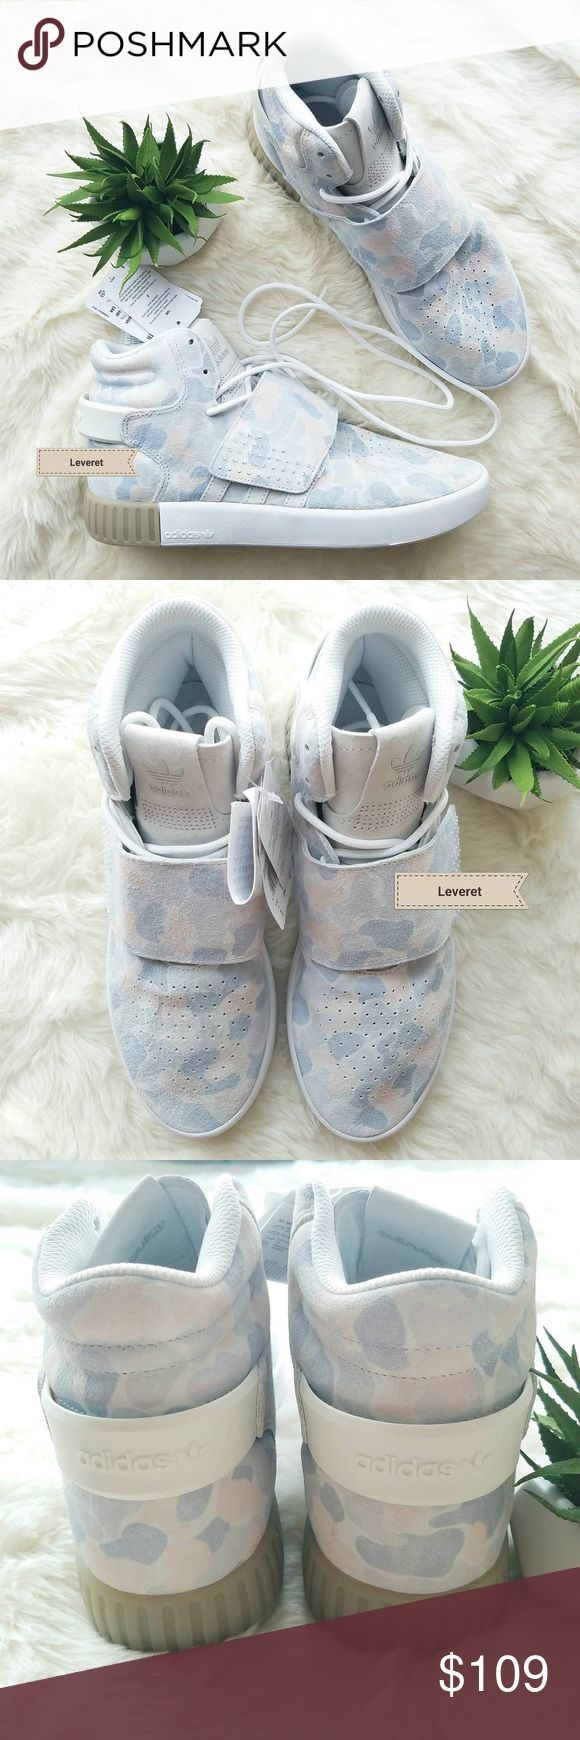 (8) Adidas Original Unisex Tubular 100% Authentic NEW WITH TAG - NO BOX  Unisex style : Good for both Men and Women   Sneaker style - Fall Mini Boot Nike Shoes Athletic Shoes